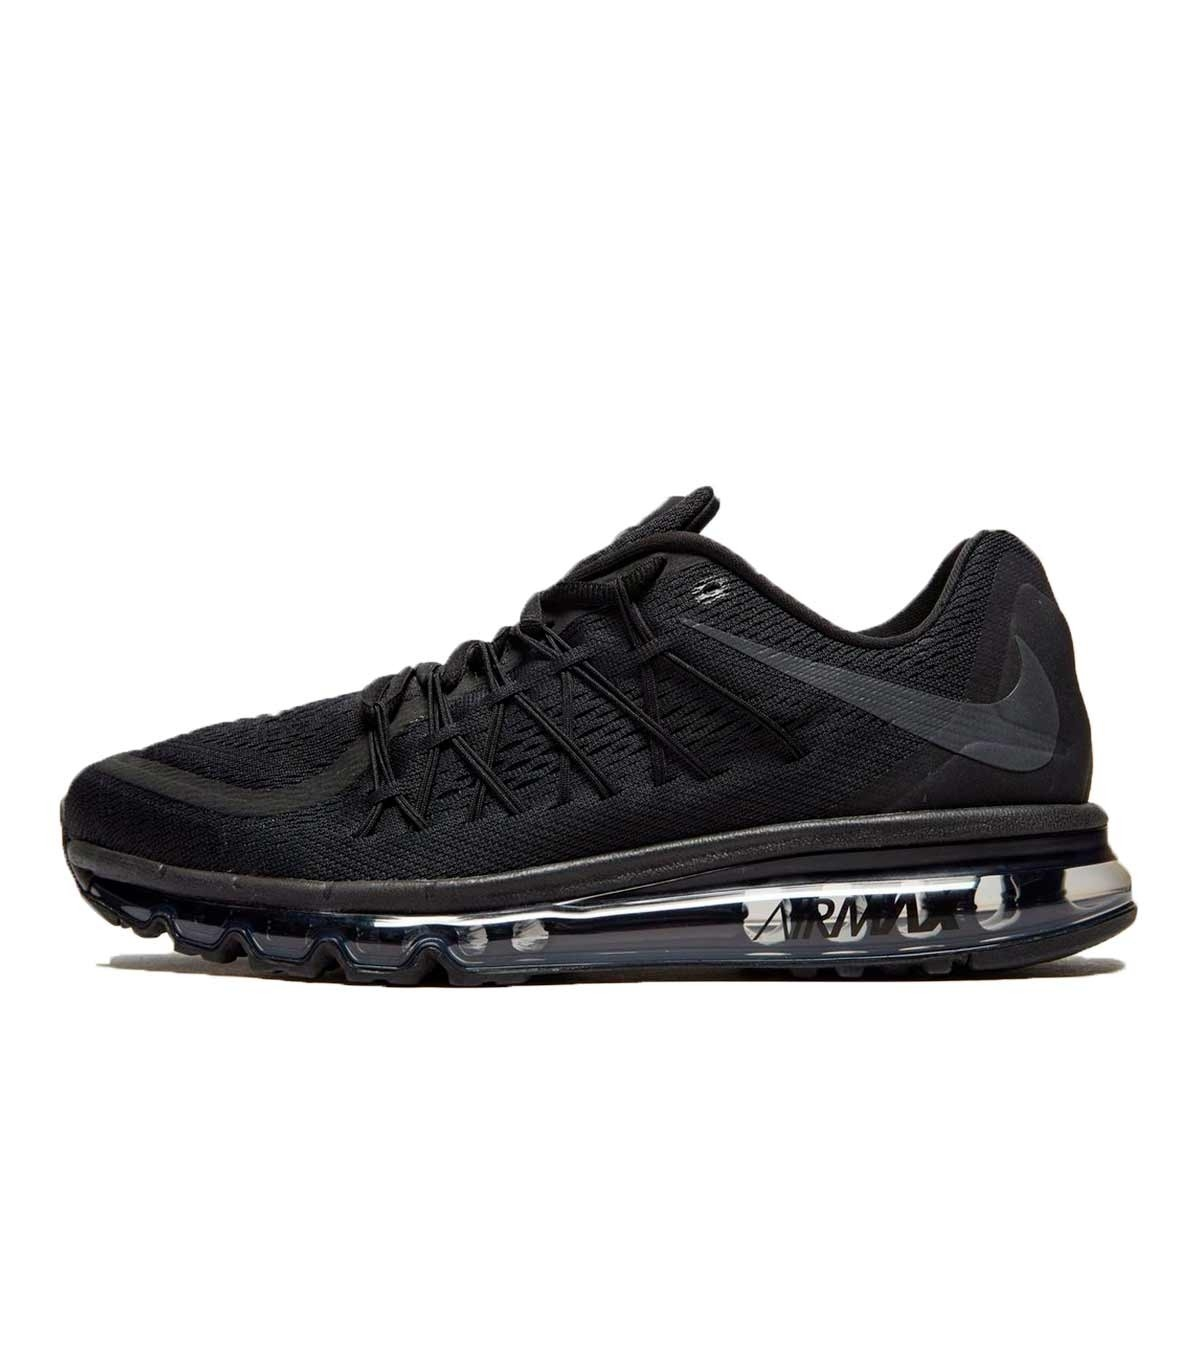 finest selection 11c4c 5f16d Zapatilla Nike Air Max 2015